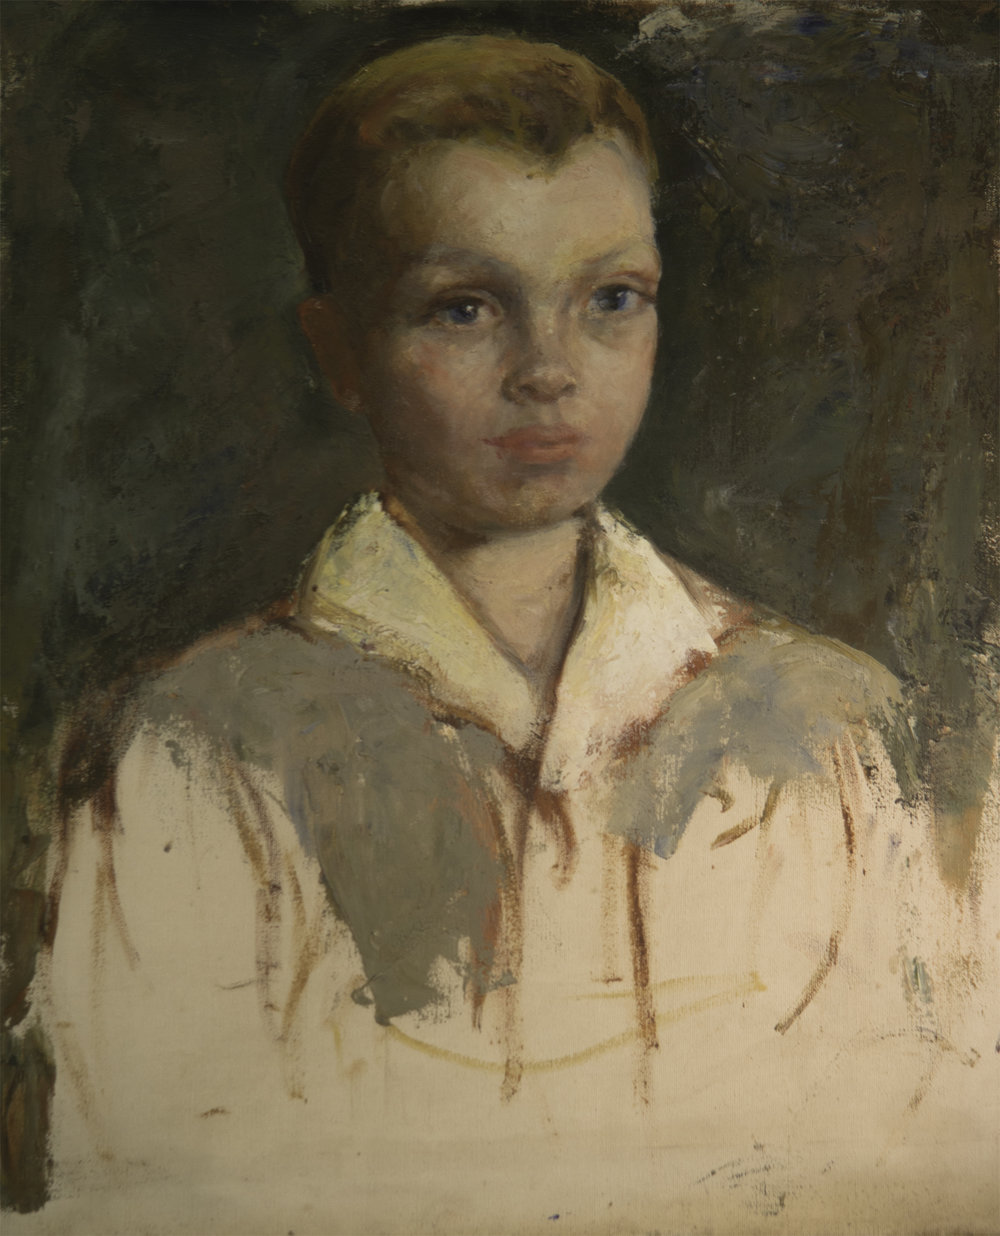 Winfield Kurt Greene, aged 10 in 1929.